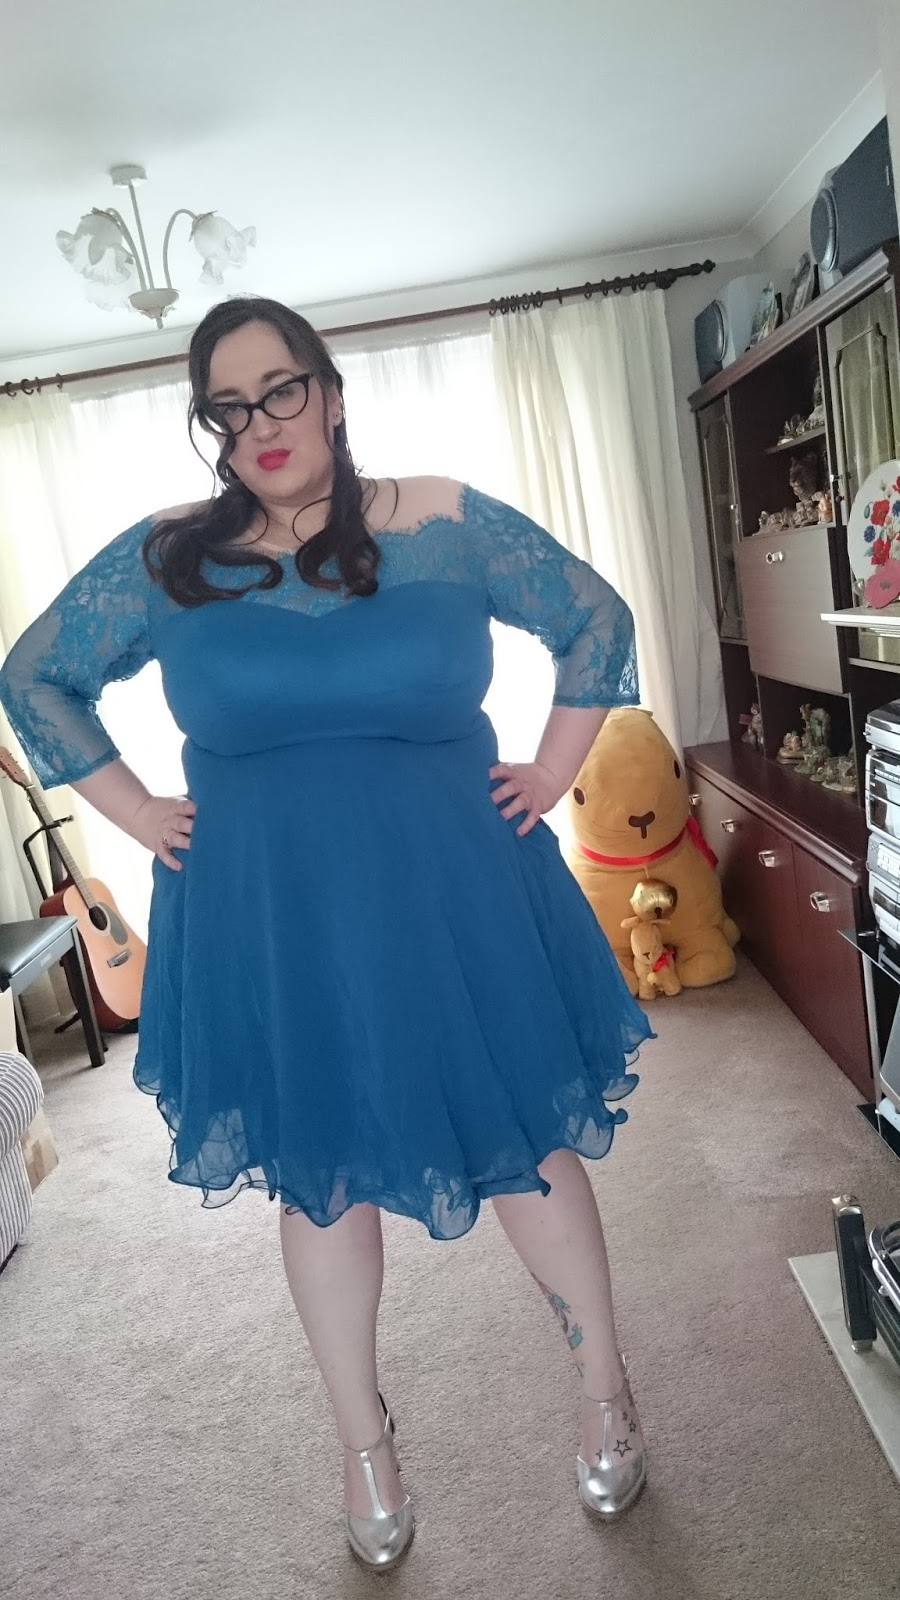 fat plus size girl bbw (size 20/22) wearing a chi chi london from asos curve dress